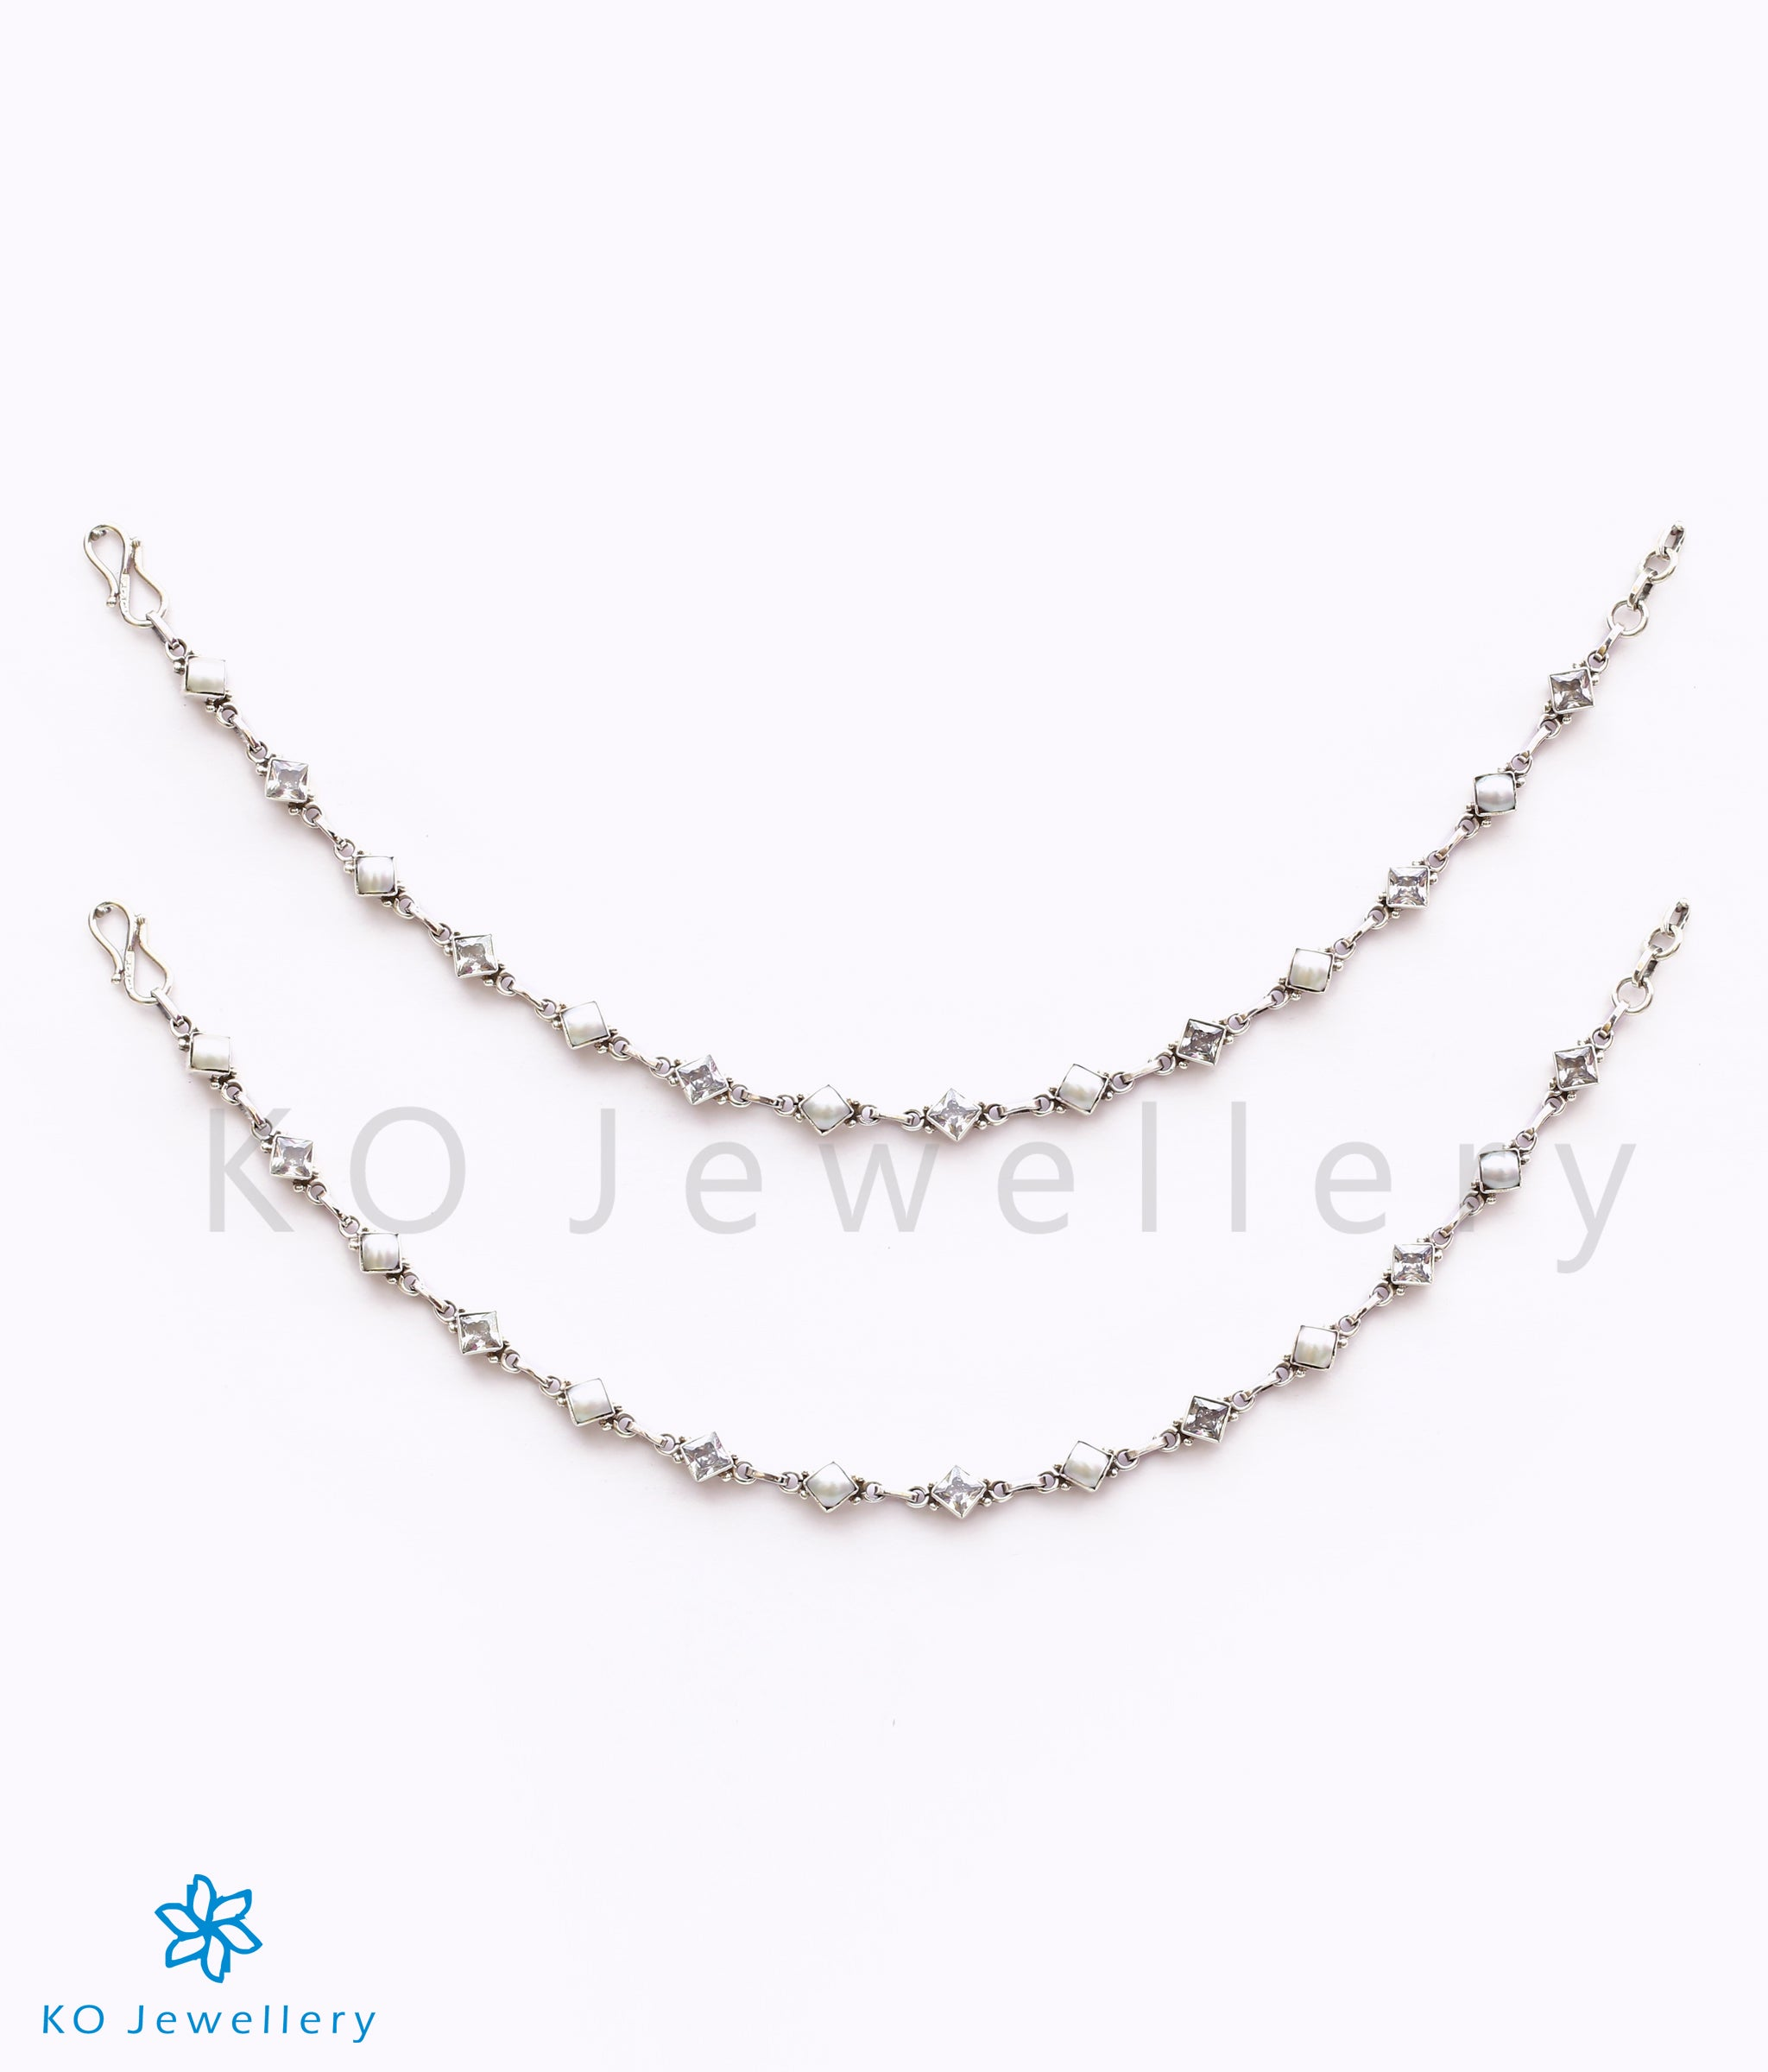 Buy women's silver anklets payal toe rings online, bridal